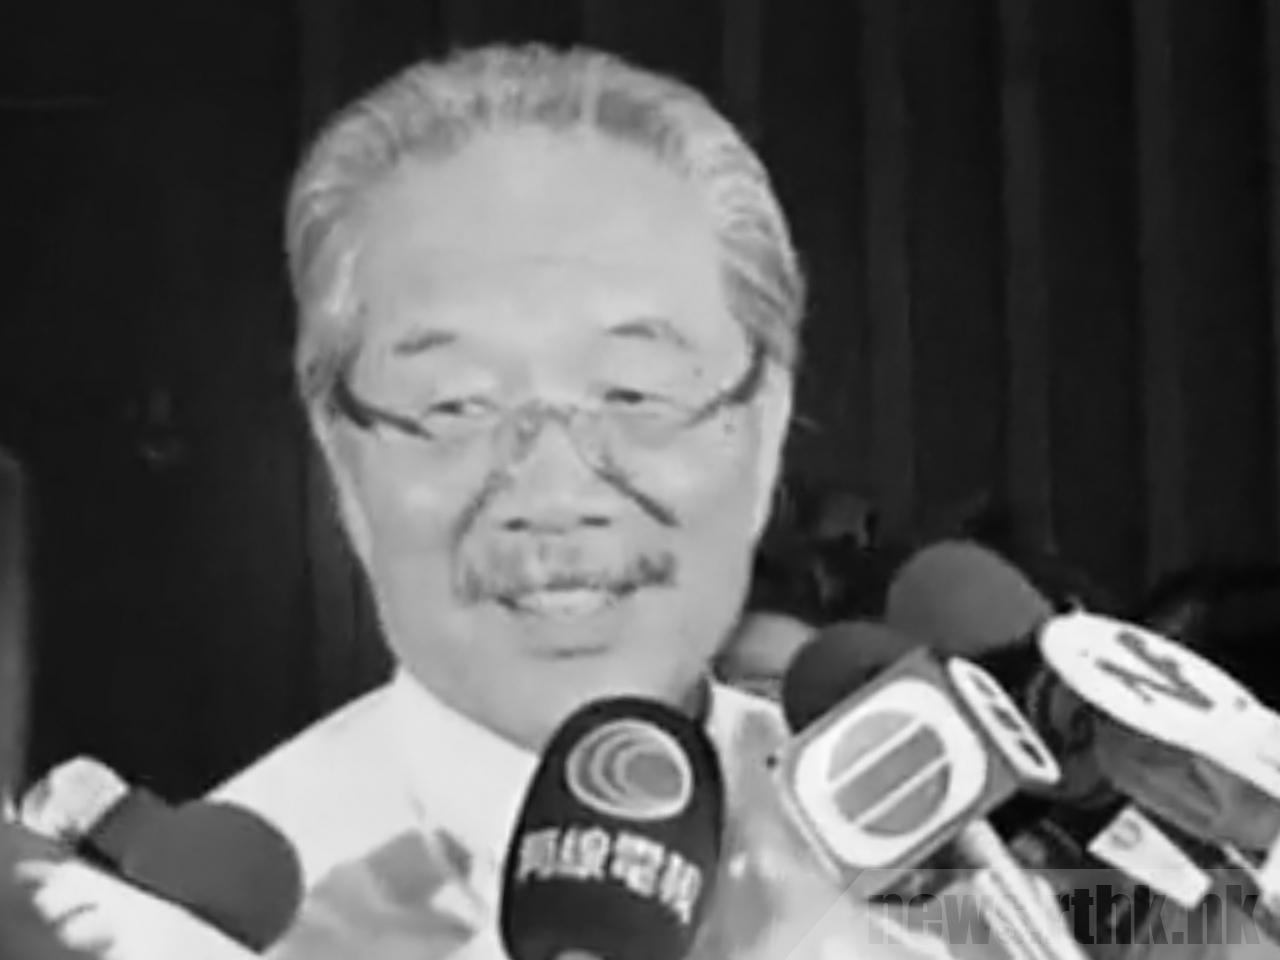 Philip Wong served in the Legislative Council both before and after the handover, from 1991 to 2012. File photo: RTHK